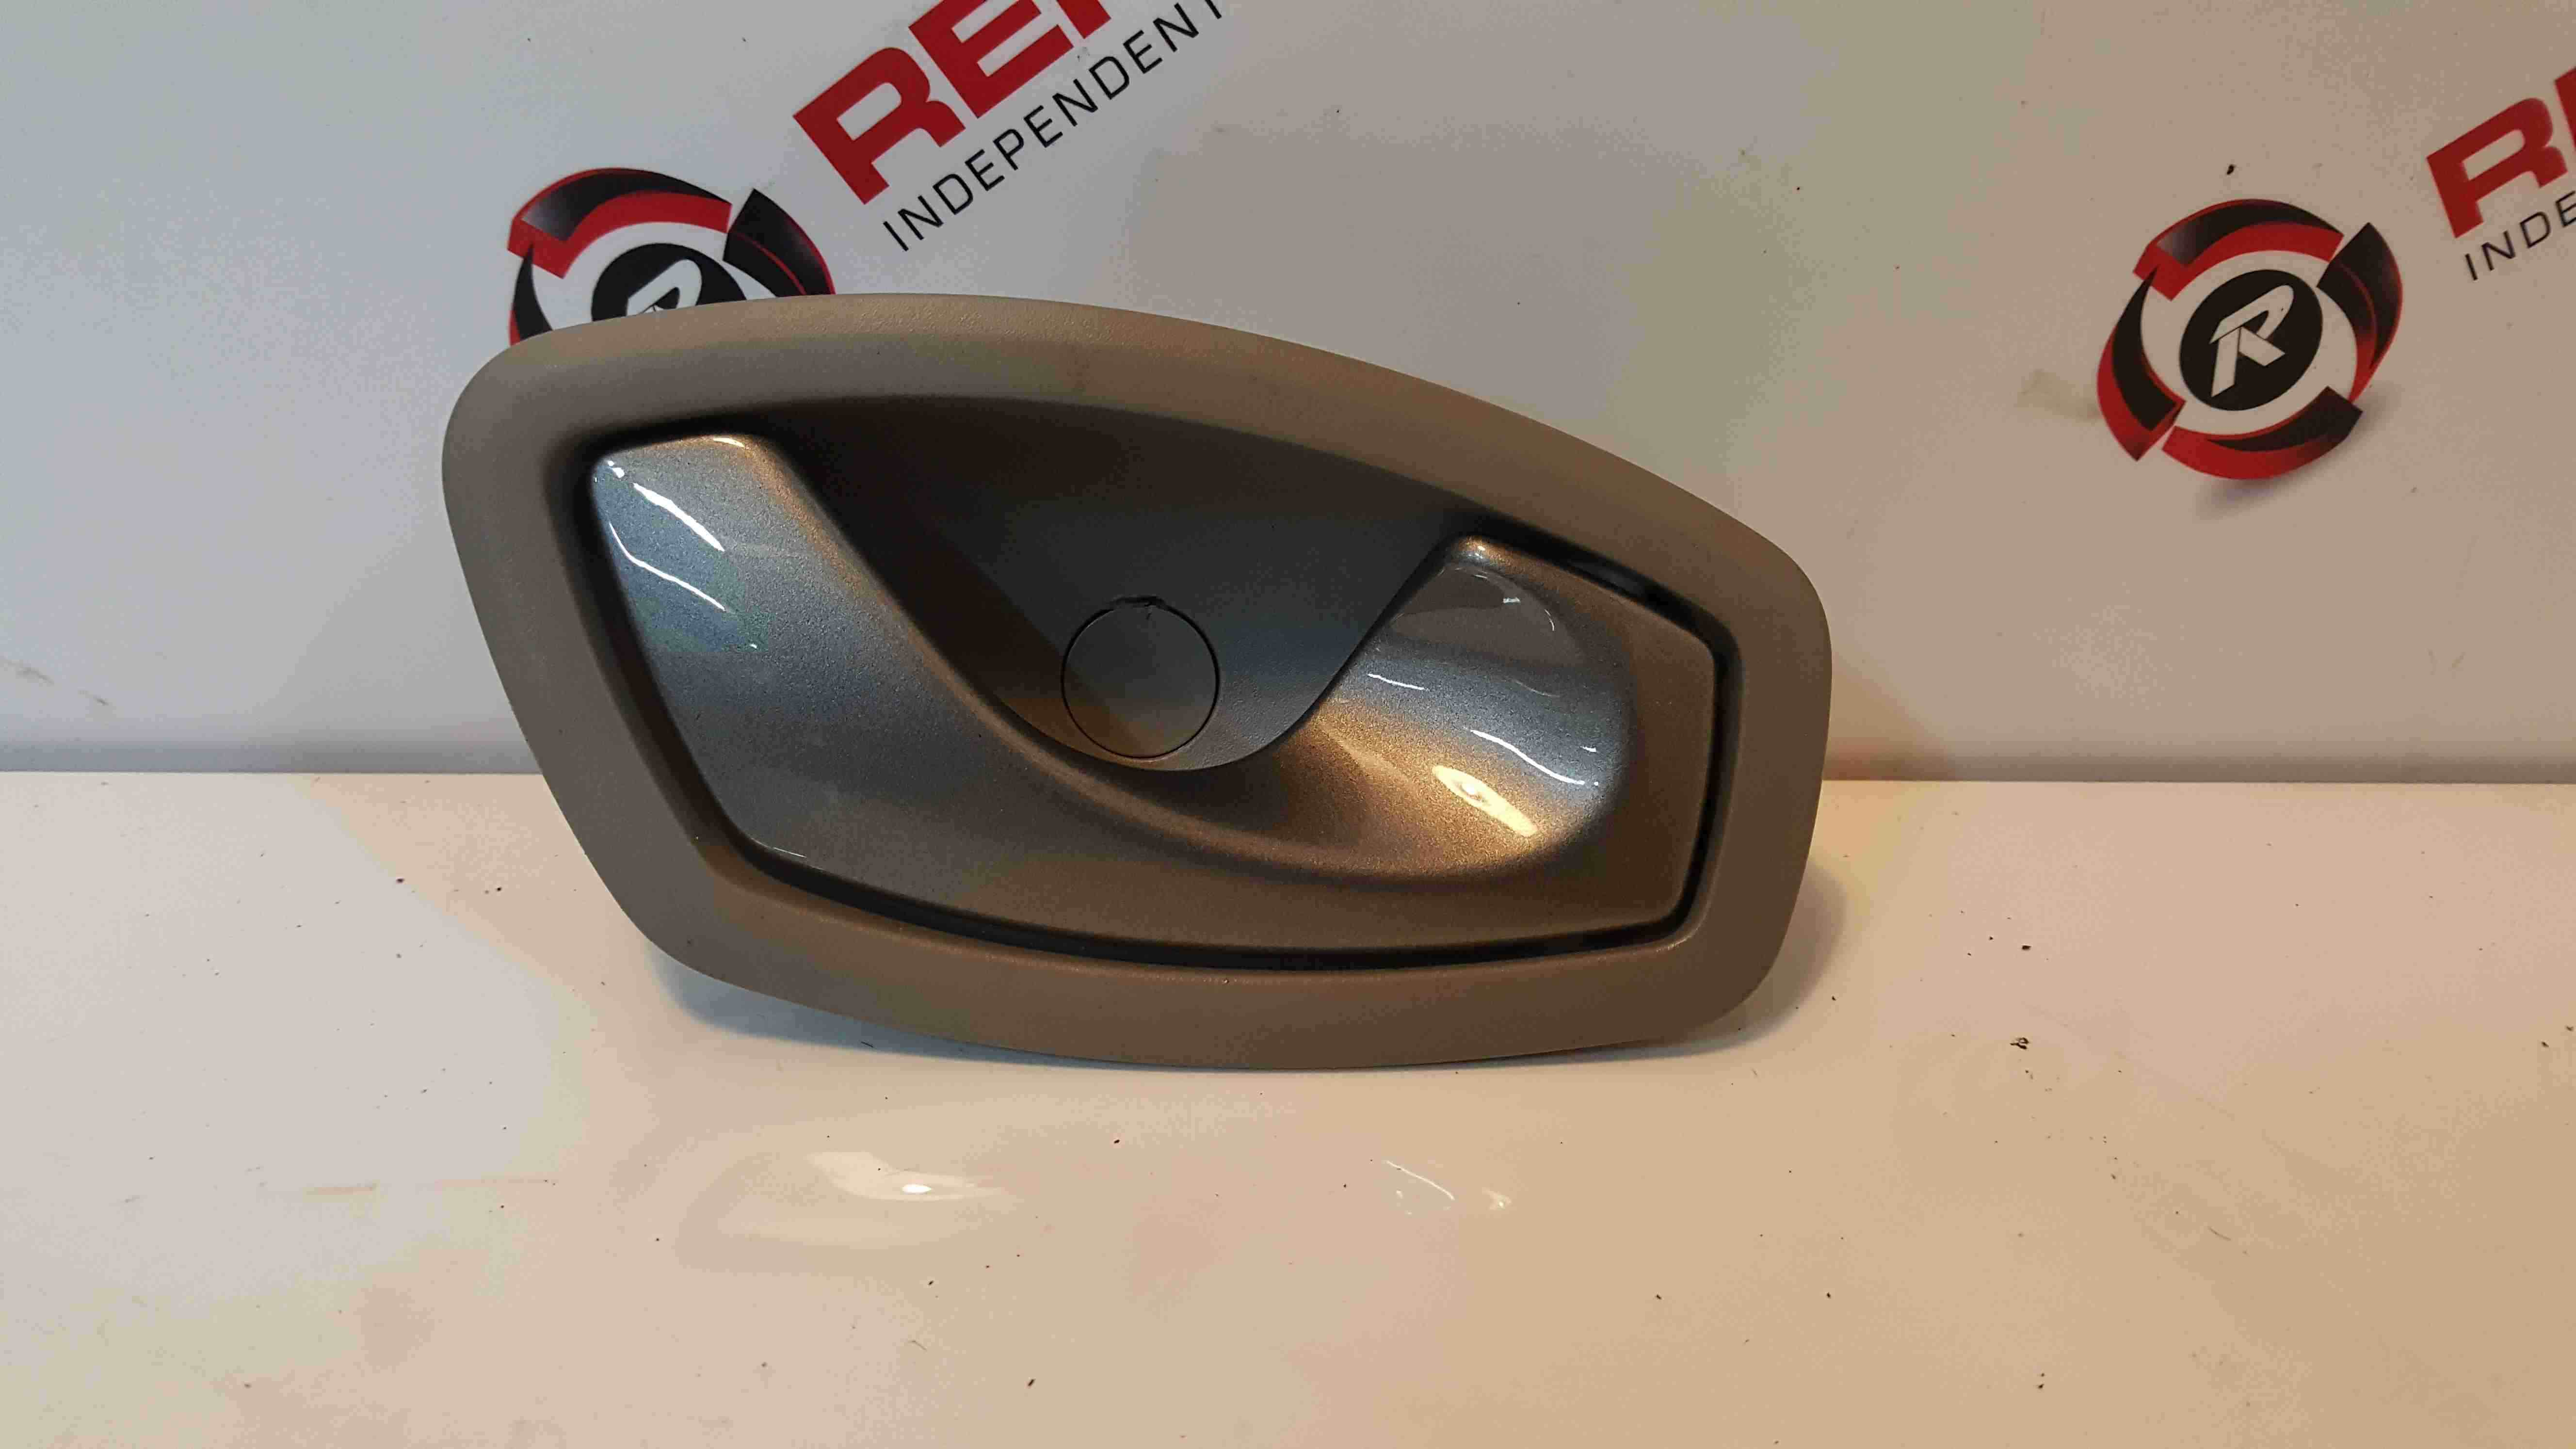 Renault Zoe 2012-2019 Drivers OSF Front Interior Handle 806700005R